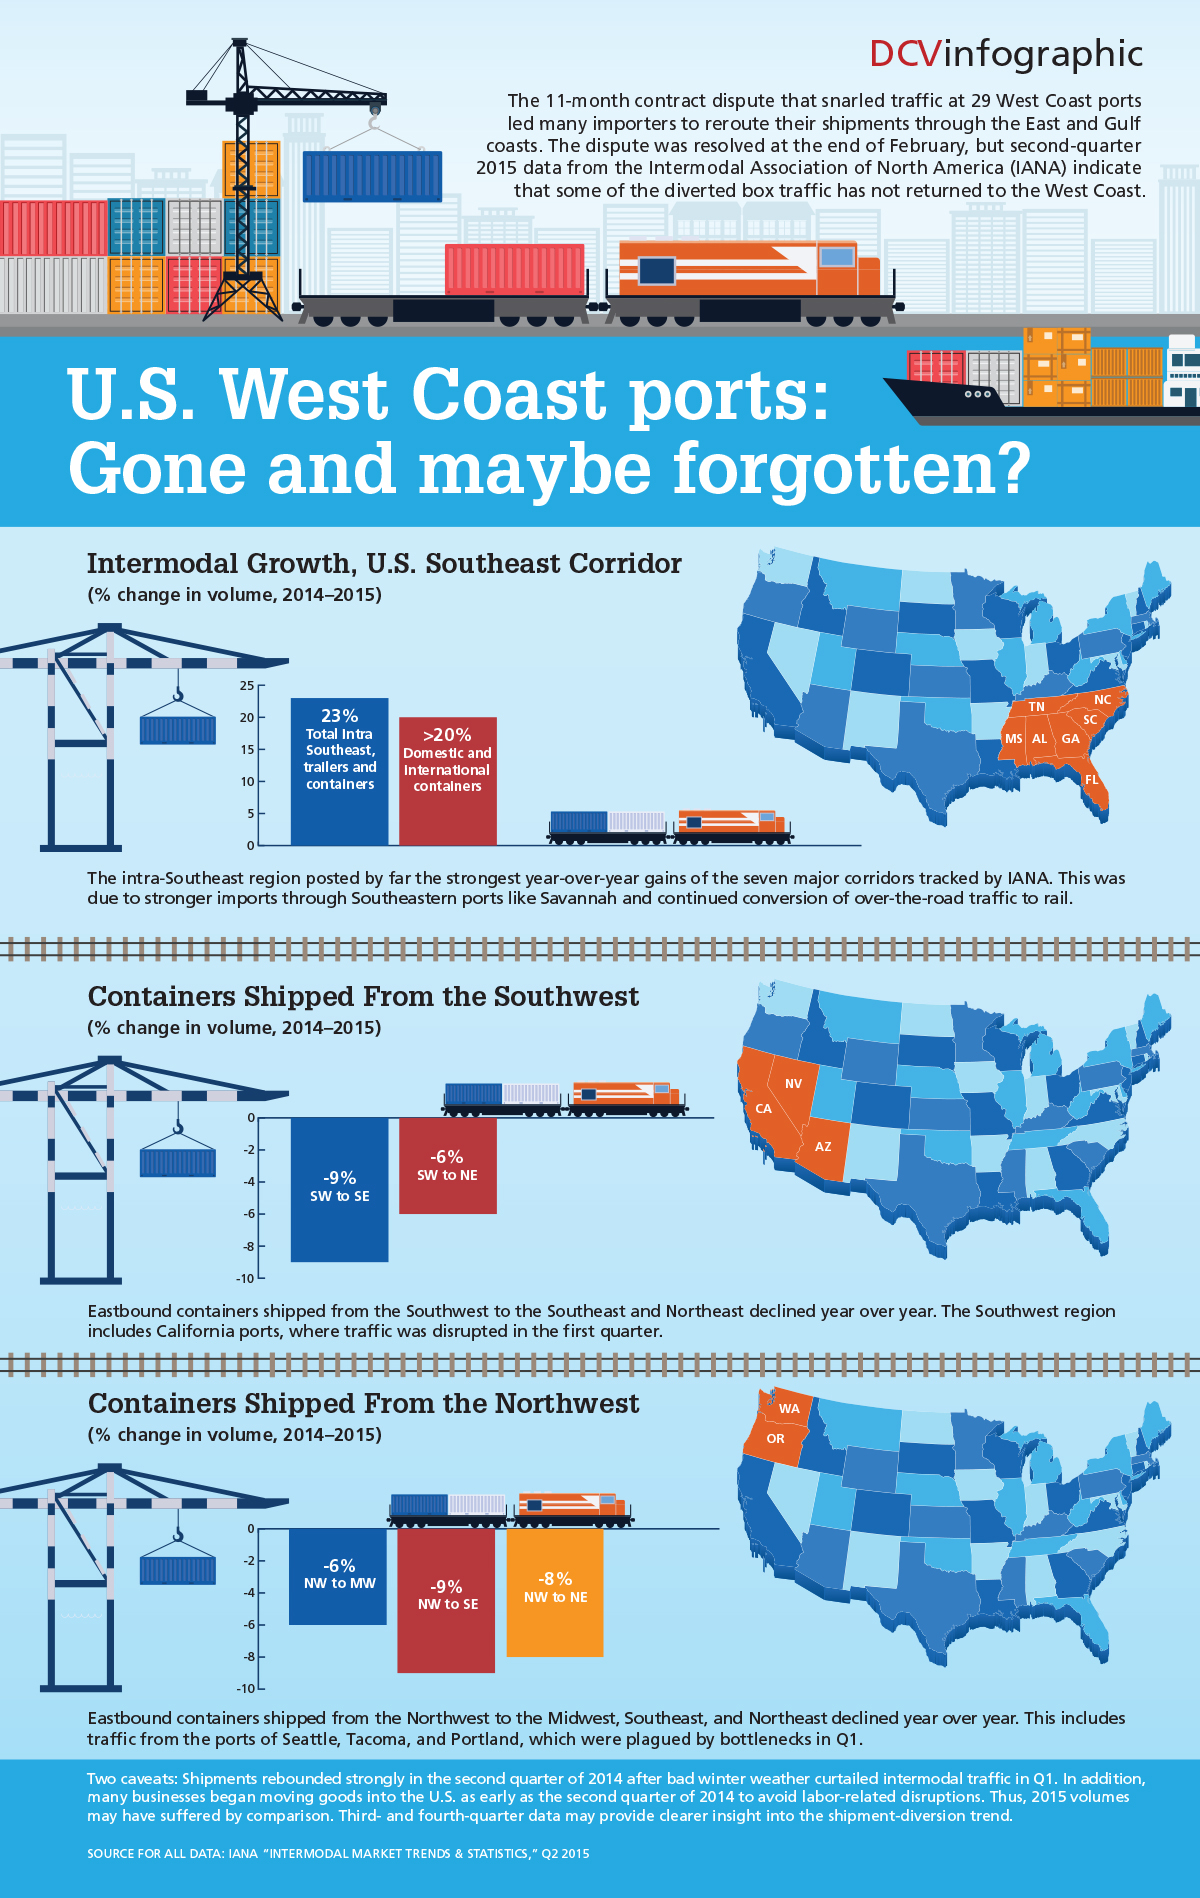 Infographic: U.S. West Coast ports: Gone and maybe forgotten? The 11-month contract dispute that snarled traffic at 29 West Coast ports led many importers to reroute their shipments through the East and Gulf coasts. The dispute was resolved at the end of February, but second-quarter 2015 data from the Intermodal Association of North America (IANA) indicate that some of the diverted box traffic has not returned to the West Coast.